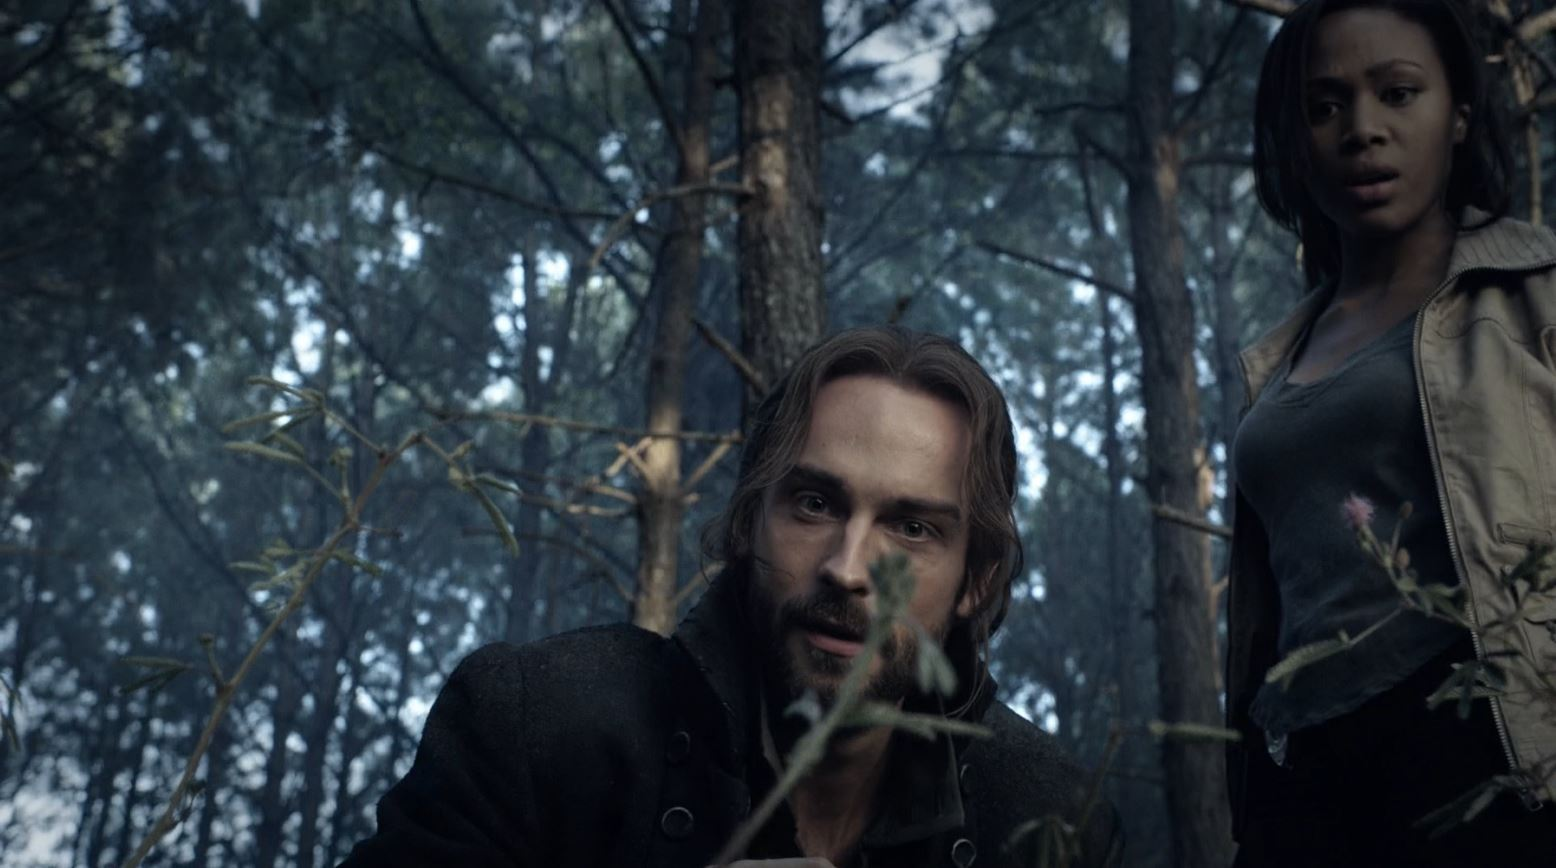 Sleepy Hollow - Tom Mison as Ichabod Crane & Nicole Beharie as Abbie Mills